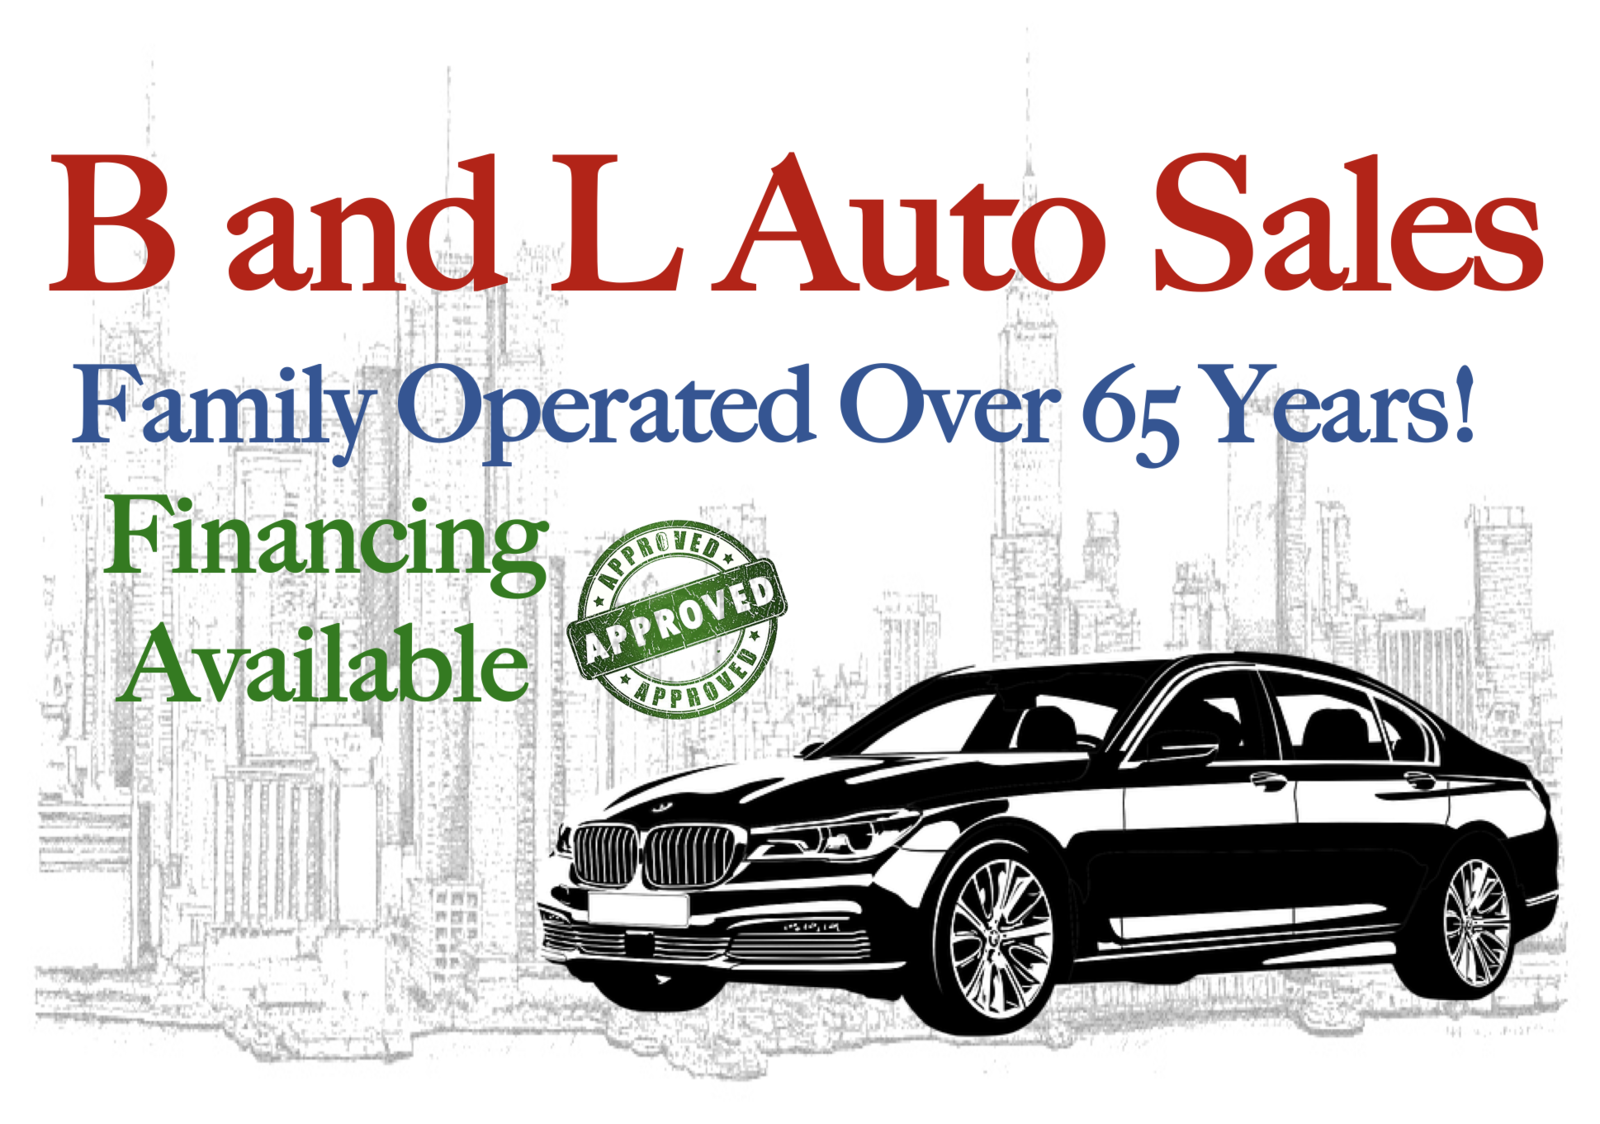 Bl Auto Sales Bronx Ny Read Consumer Reviews Browse Used And New Cars For Sale